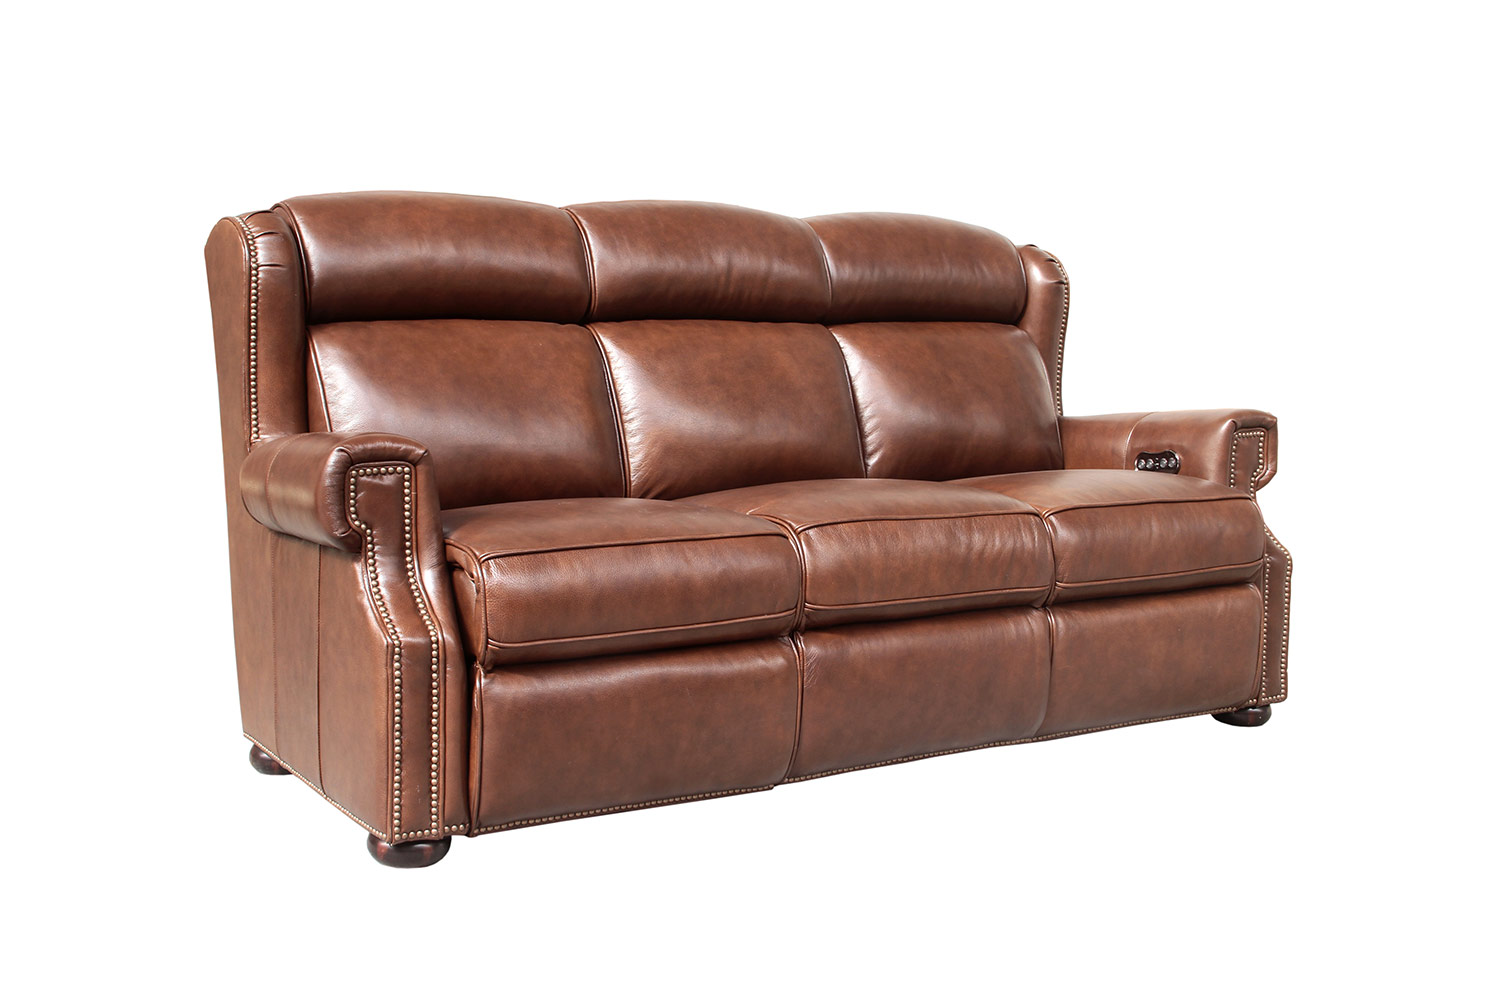 Barcalounger Benwick Power Reclining Sofa with Power Head Rests - Shoreham Chocolate/All Leather